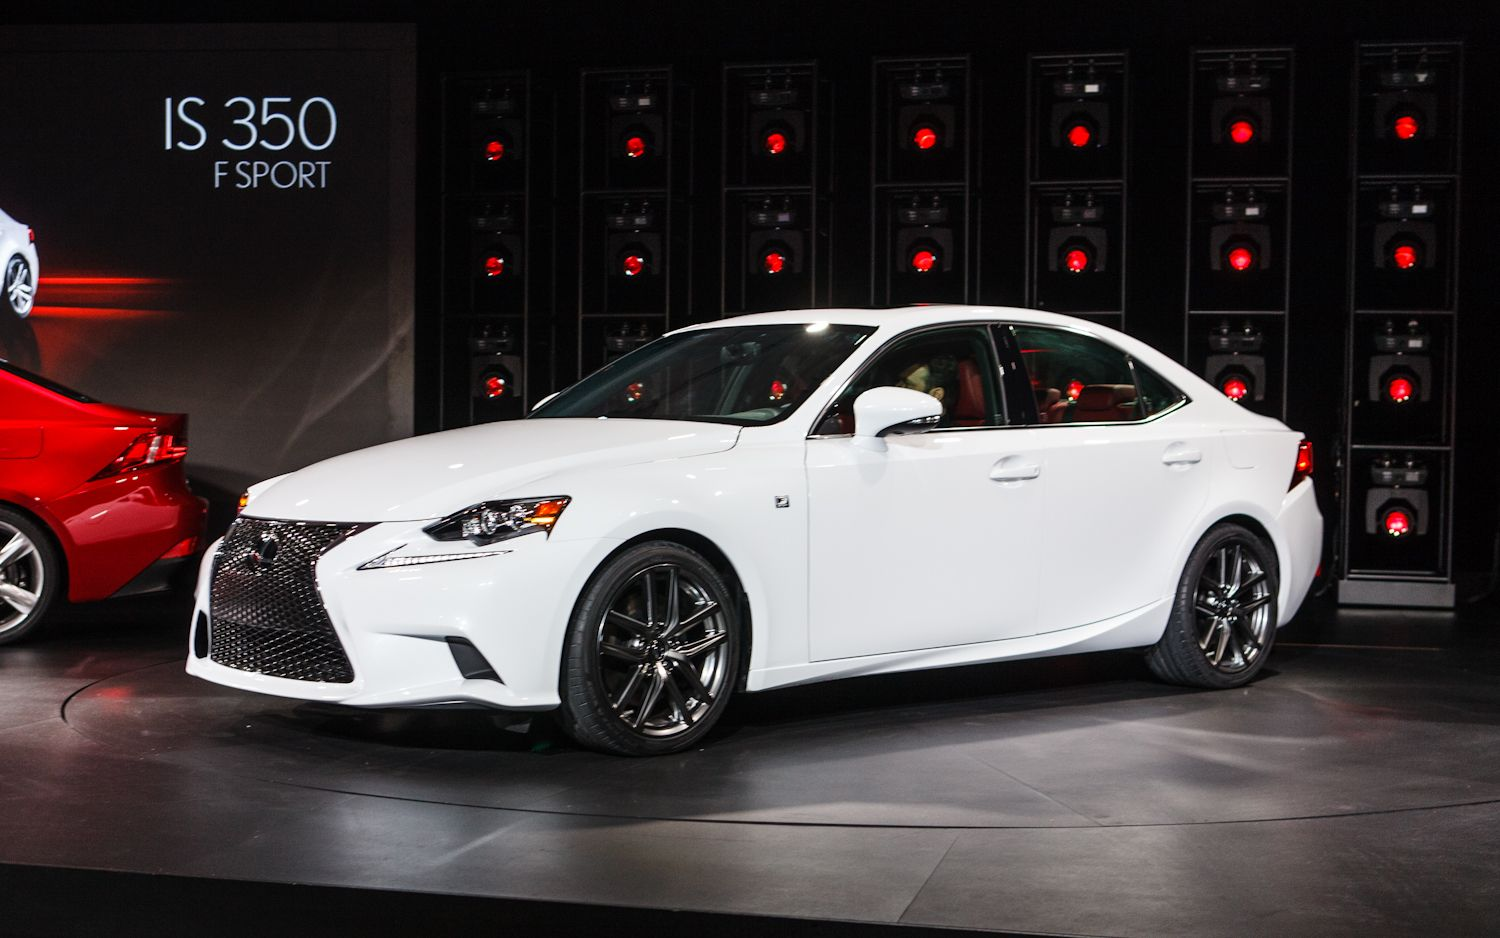 2014 Lexus IS F Lexus, Sports car brands, Sports cars luxury